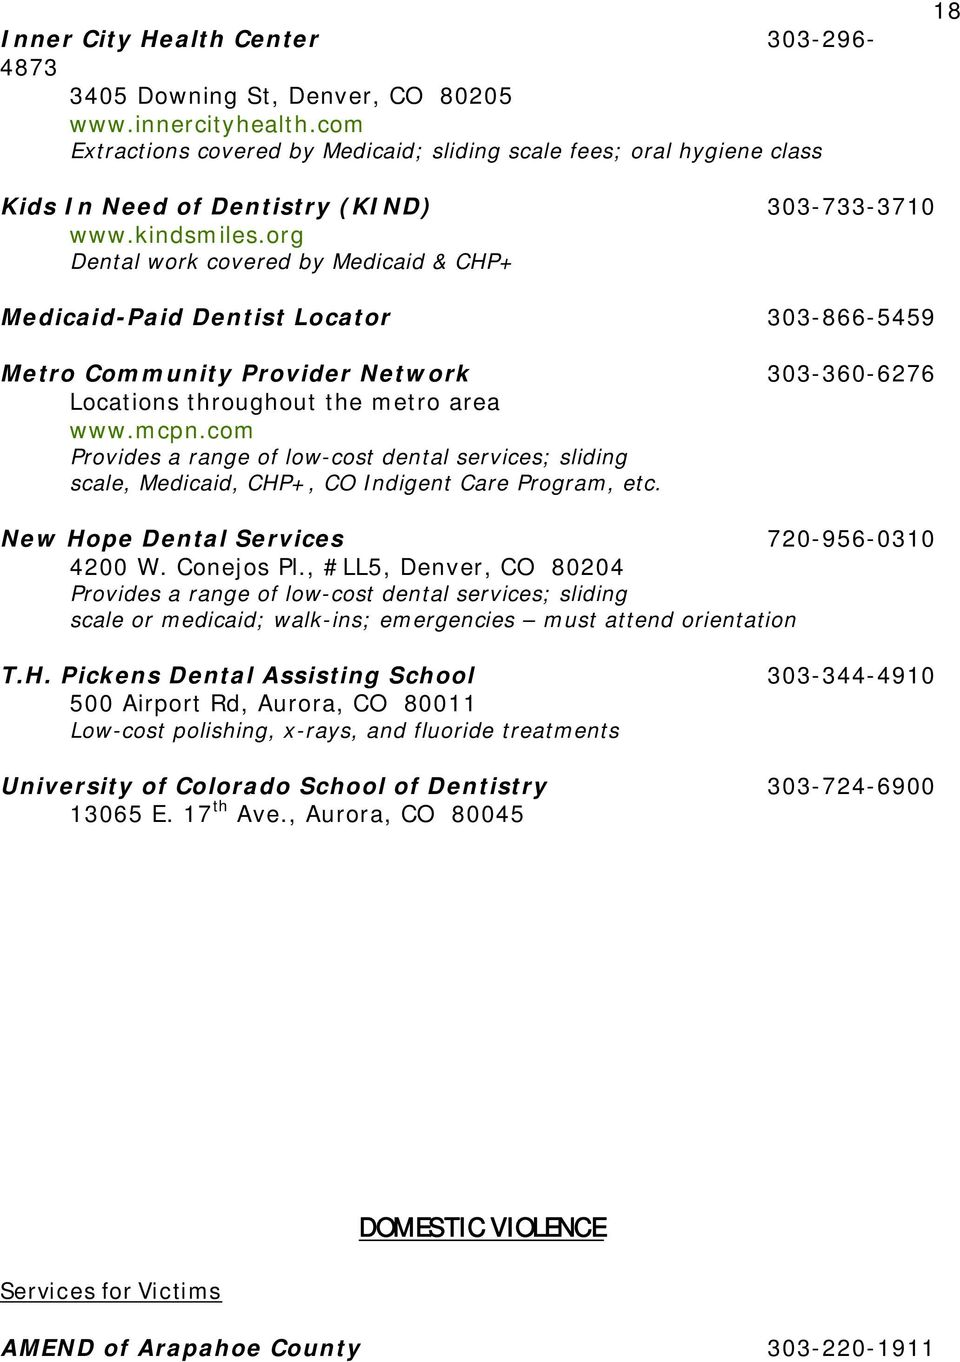 org Dental work covered by Medicaid & CHP+ Medicaid-Paid Dentist Locator 303-866-5459 Metro Community Provider Network 303-360-6276 Locations throughout the metro area www.mcpn.